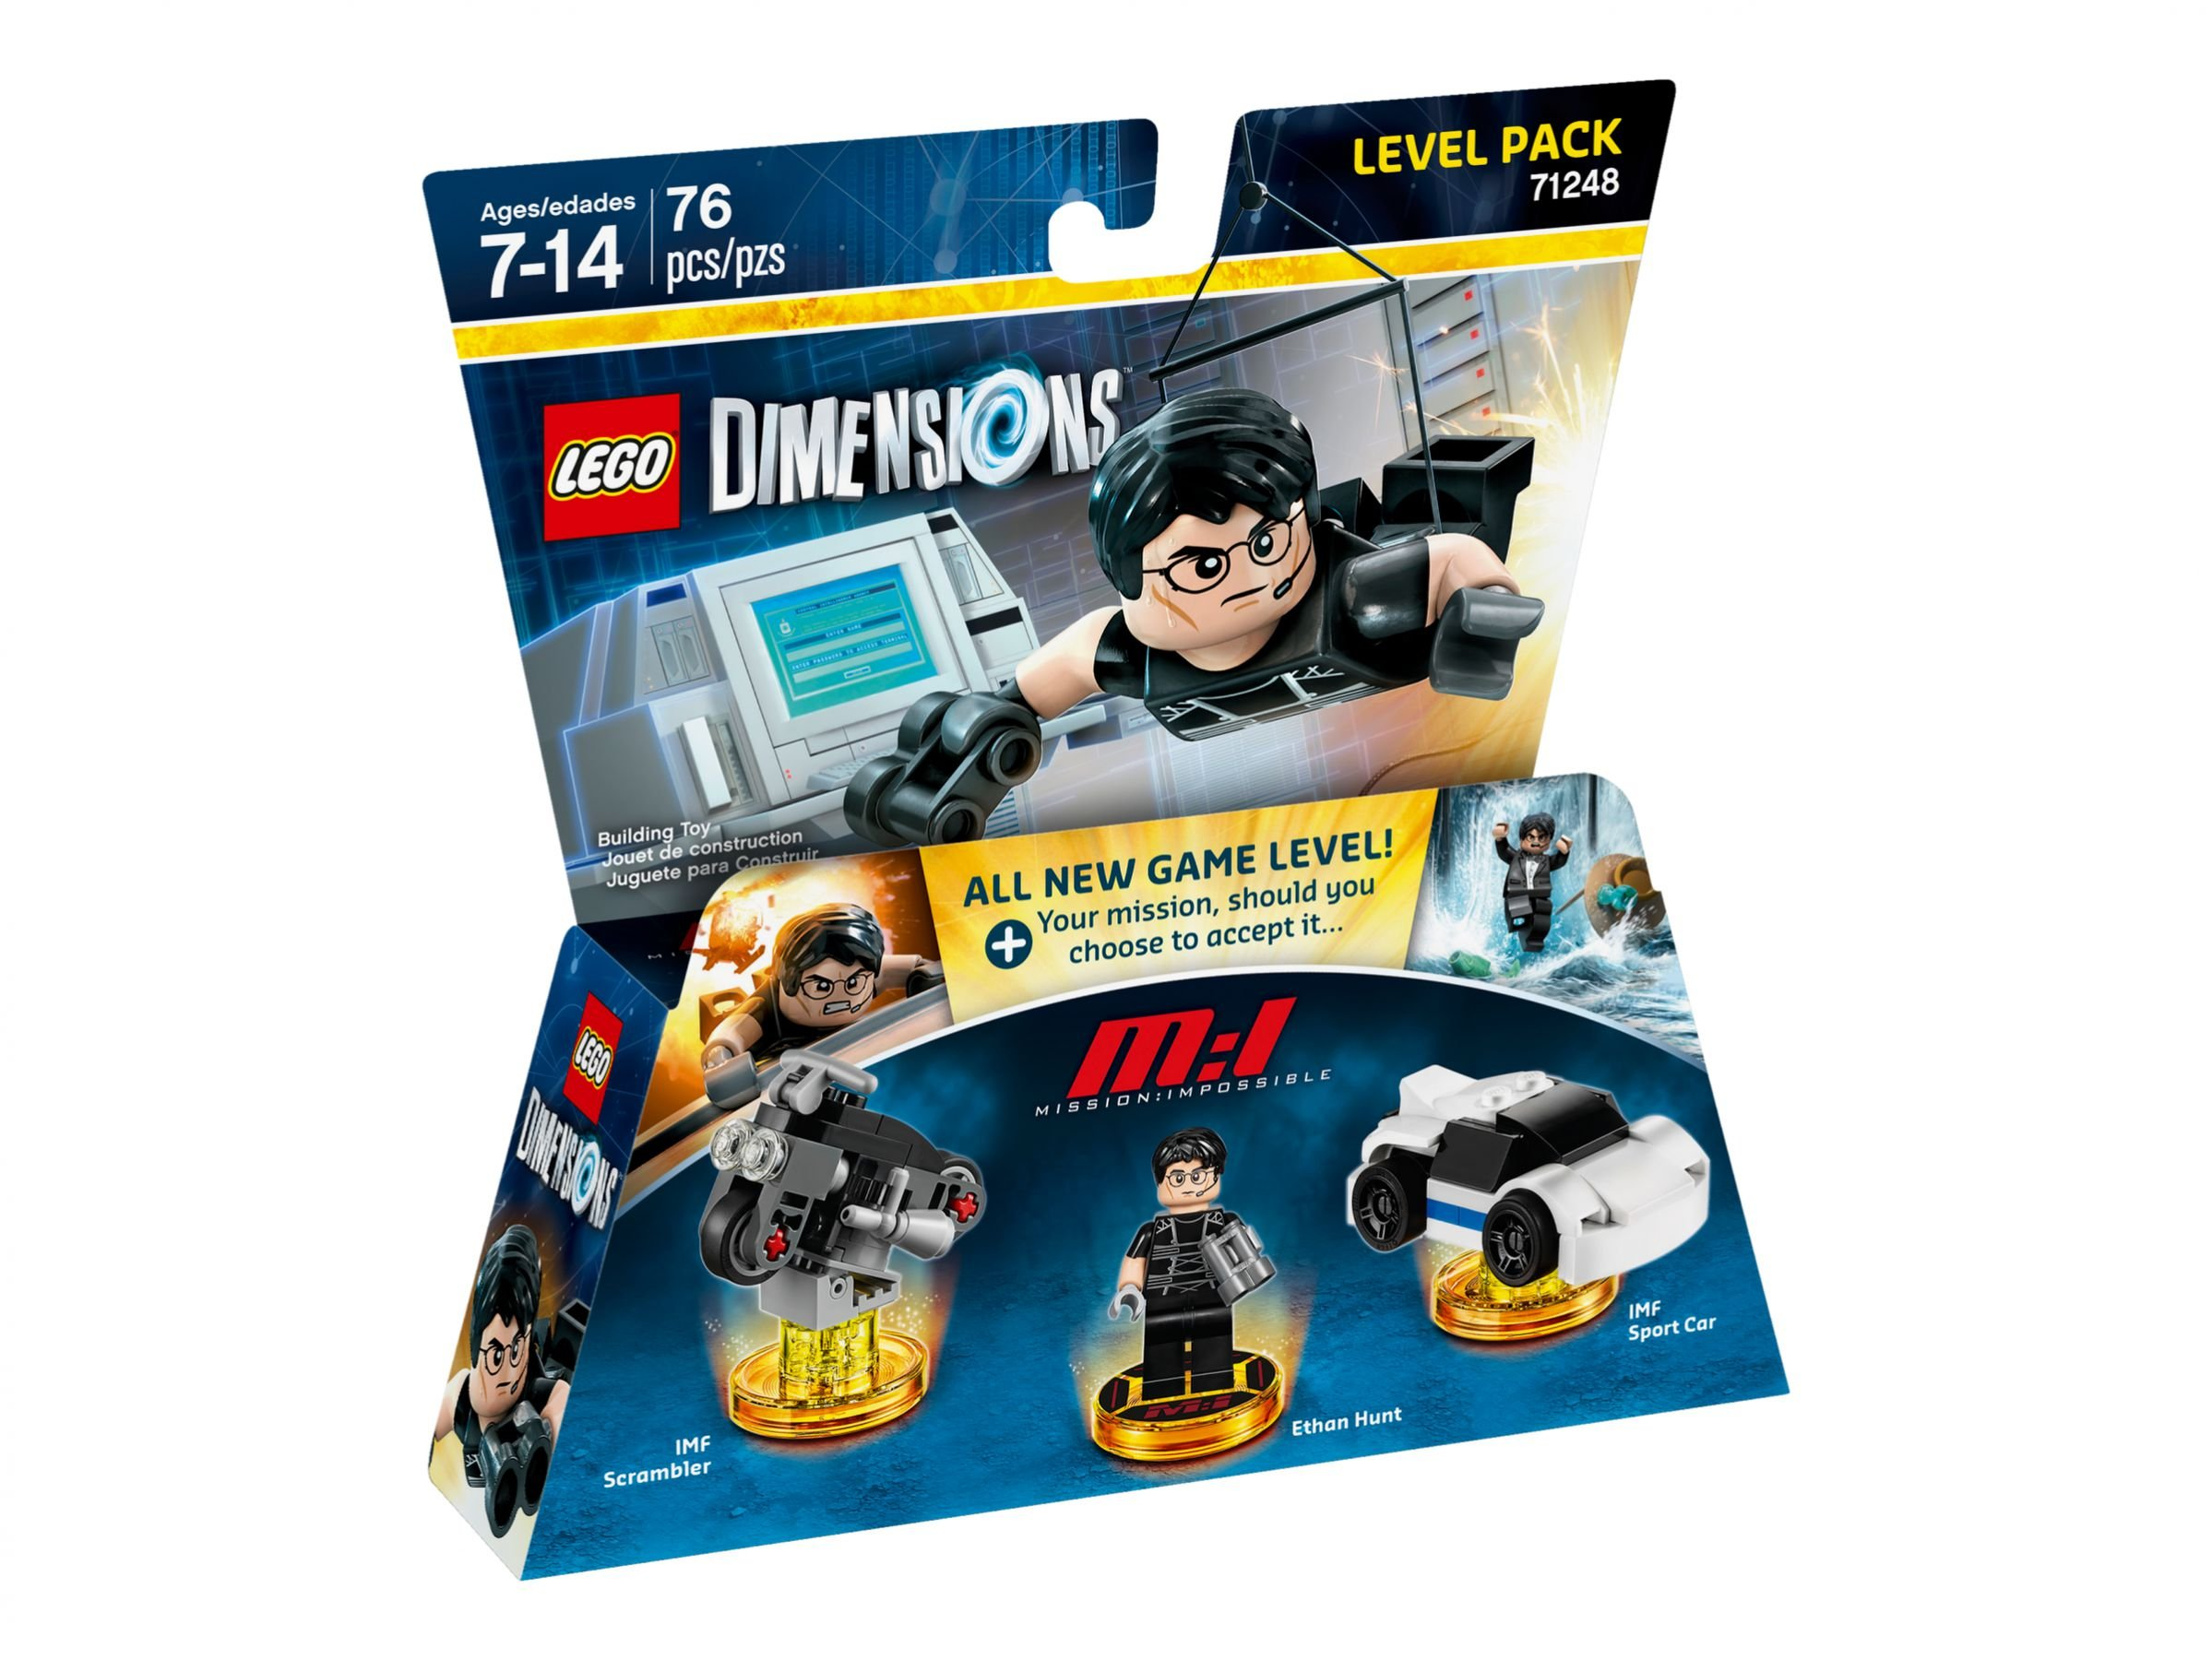 LEGO Dimensions 71248 Level Pack Mission Impossible LEGO_71248_alt1.jpg